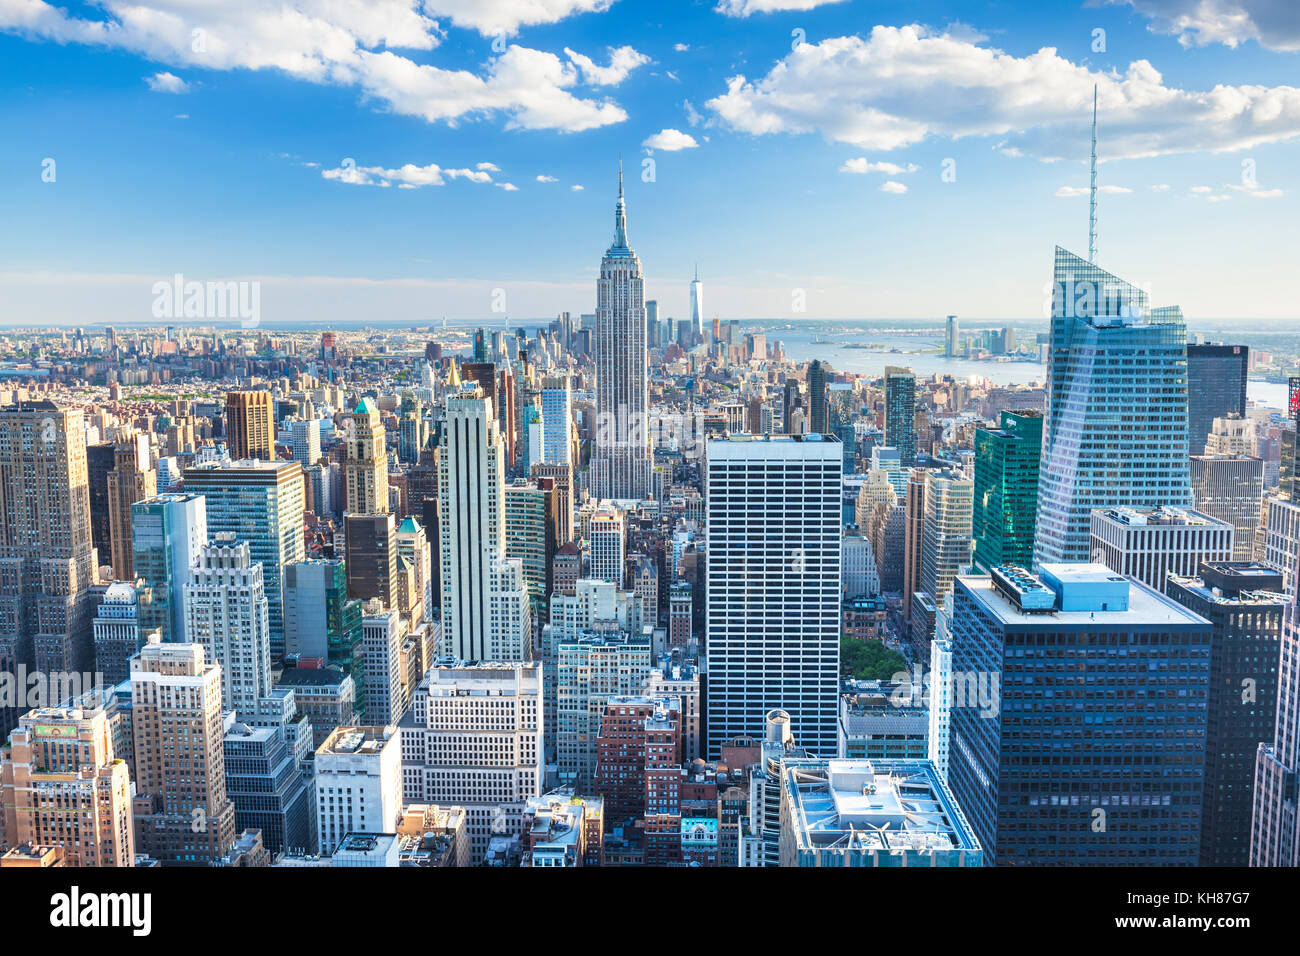 Manhattan skyline, New York Skyline, Empire State Building, New York City, United States of America, North America - Stock Image